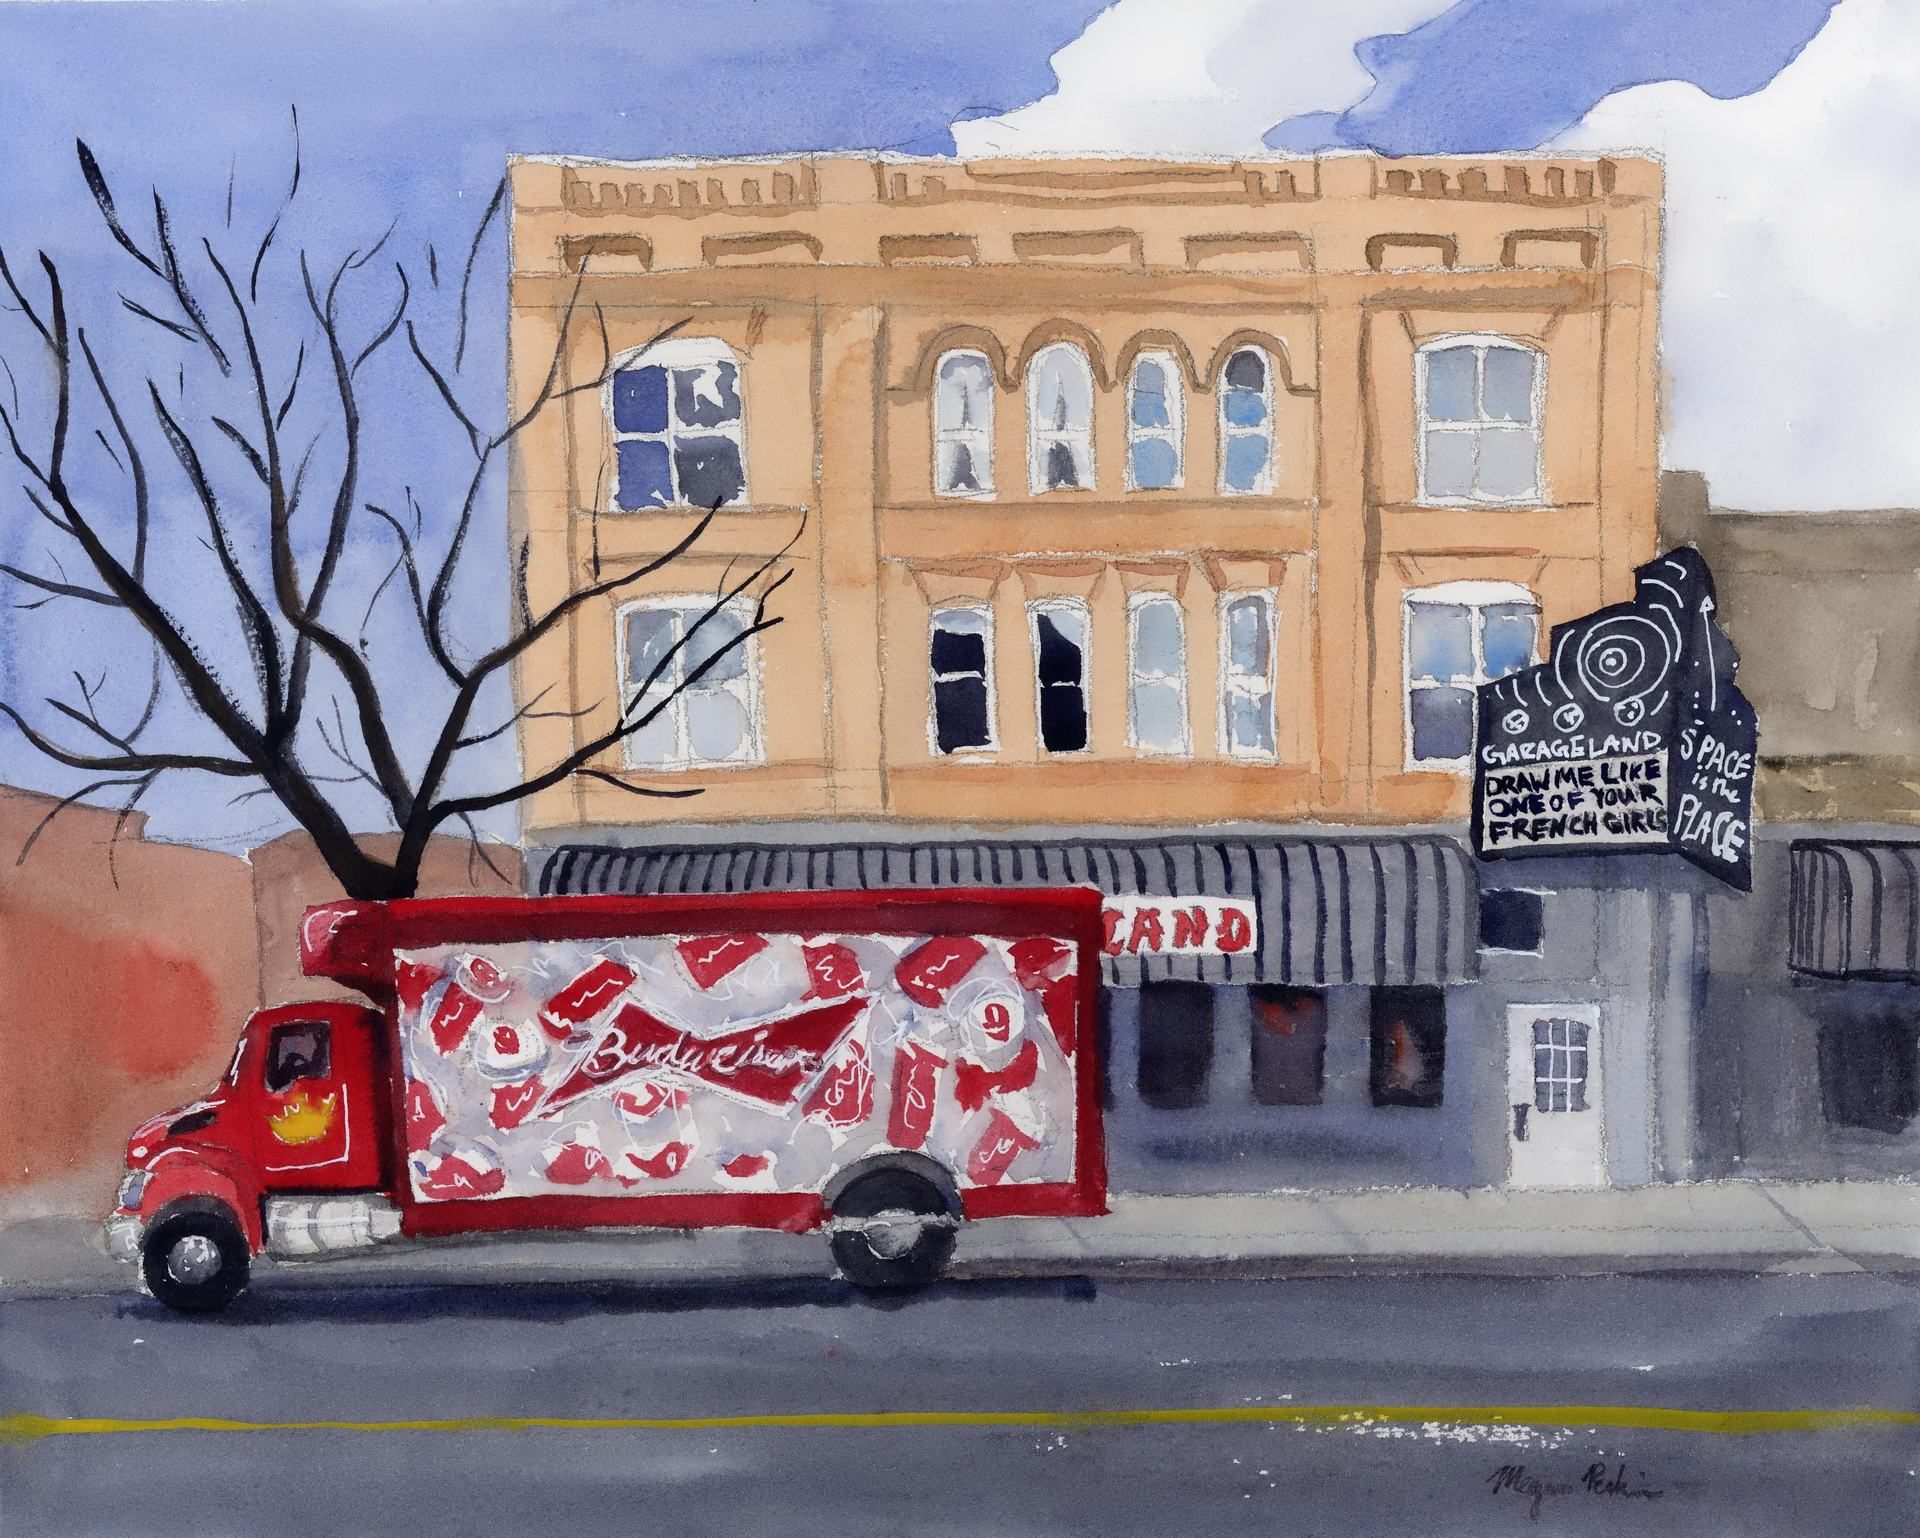 I spotted this scene back in February while walking around downtown. I just love Garageland's sign-how could I not paint it after that? And the Budweiser truck adds a great pop of color to a grey late winter's day (painted in the sweltering heat of summer, imagining a chill in the air!)